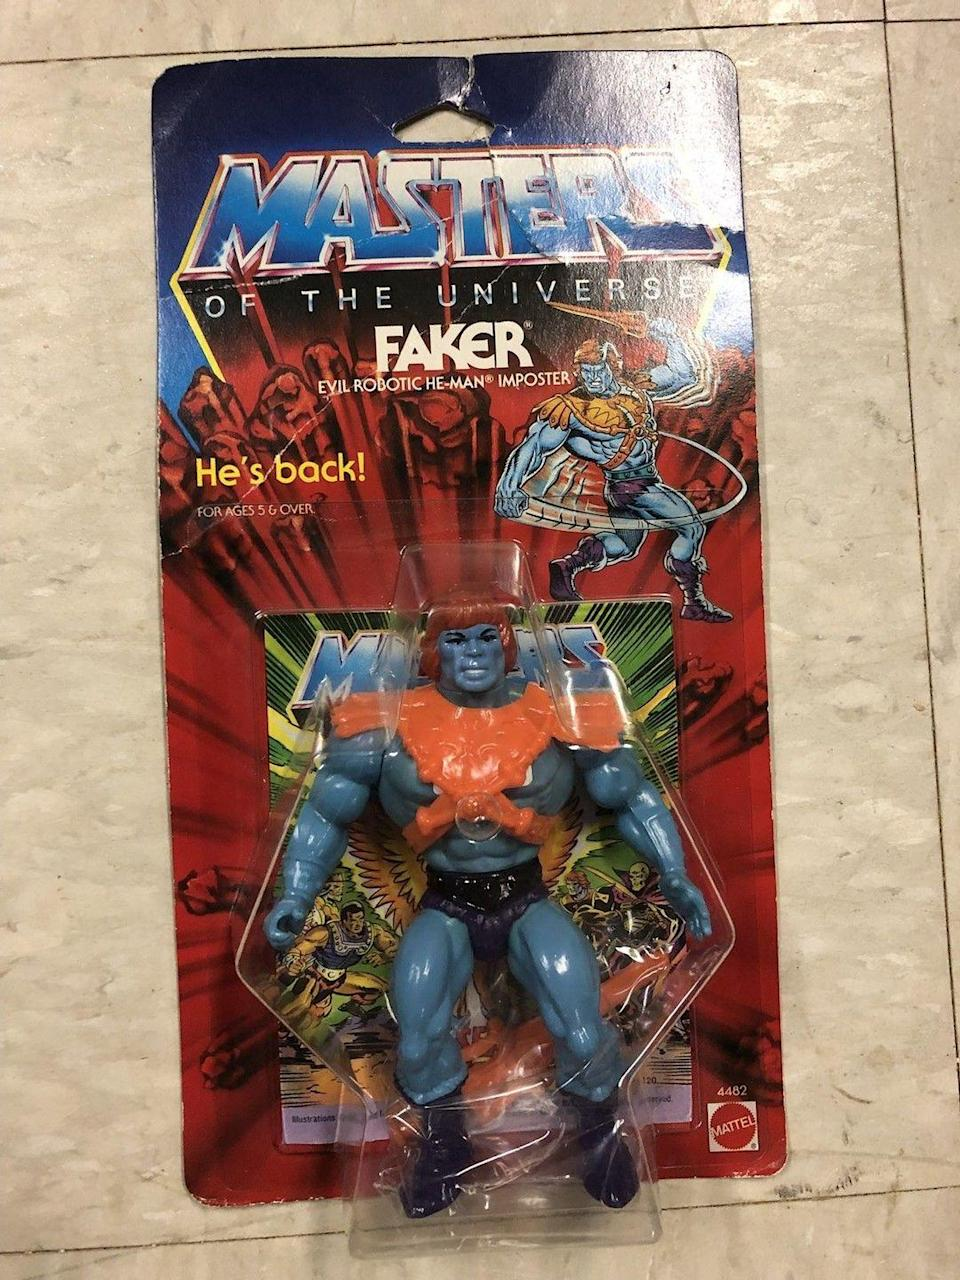 """<p>His name might be Faker, but there is certainly nothing fake about his worth. Fans are willing to pay upwards of $300-$1,000 for <a href=""""https://www.ebay.com/itm/MOTU-Faker-Masters-of-the-Universe-He-Man-MISB-MOC-MOSC-Lot-4/132888432328?hash=item1ef0c48ec8:g:tIoAAOSwUn9aSaaV:rk:4:pf:0"""" rel=""""nofollow noopener"""" target=""""_blank"""" data-ylk=""""slk:an in-box version"""" class=""""link rapid-noclick-resp"""">an in-box version</a> of the evil robotic imposter.</p>"""